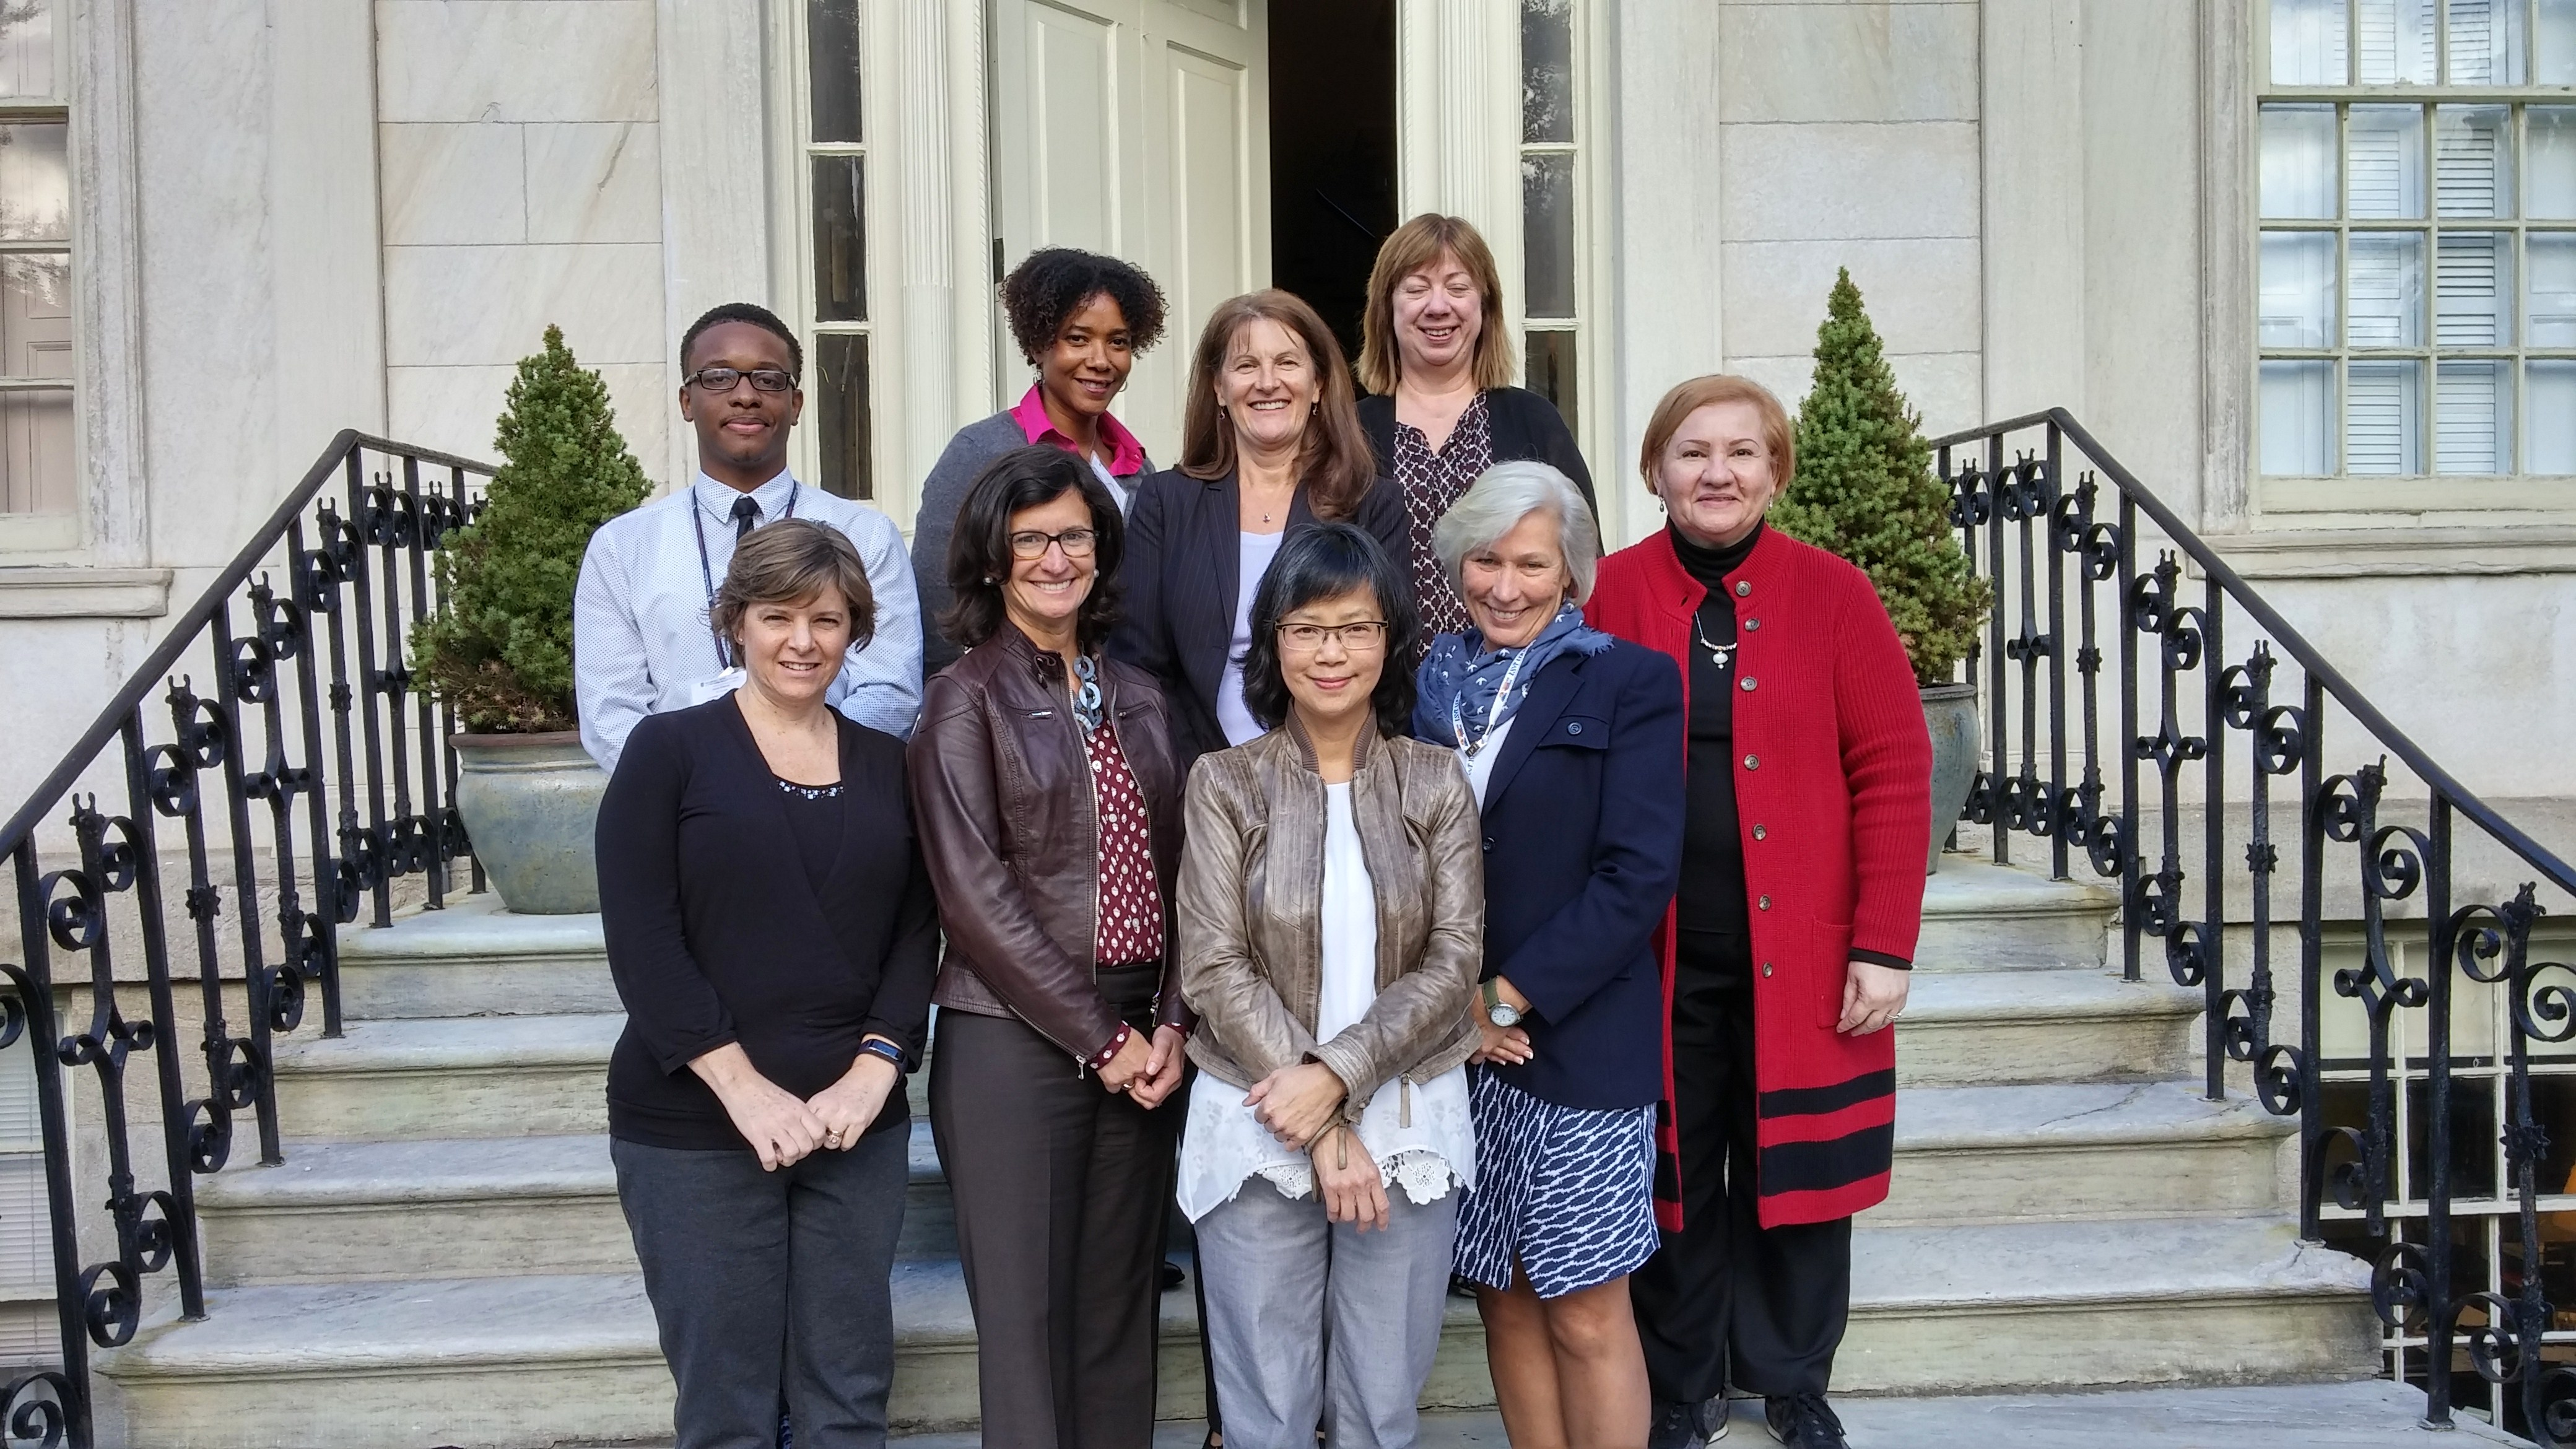 American Nursing Faculty Members